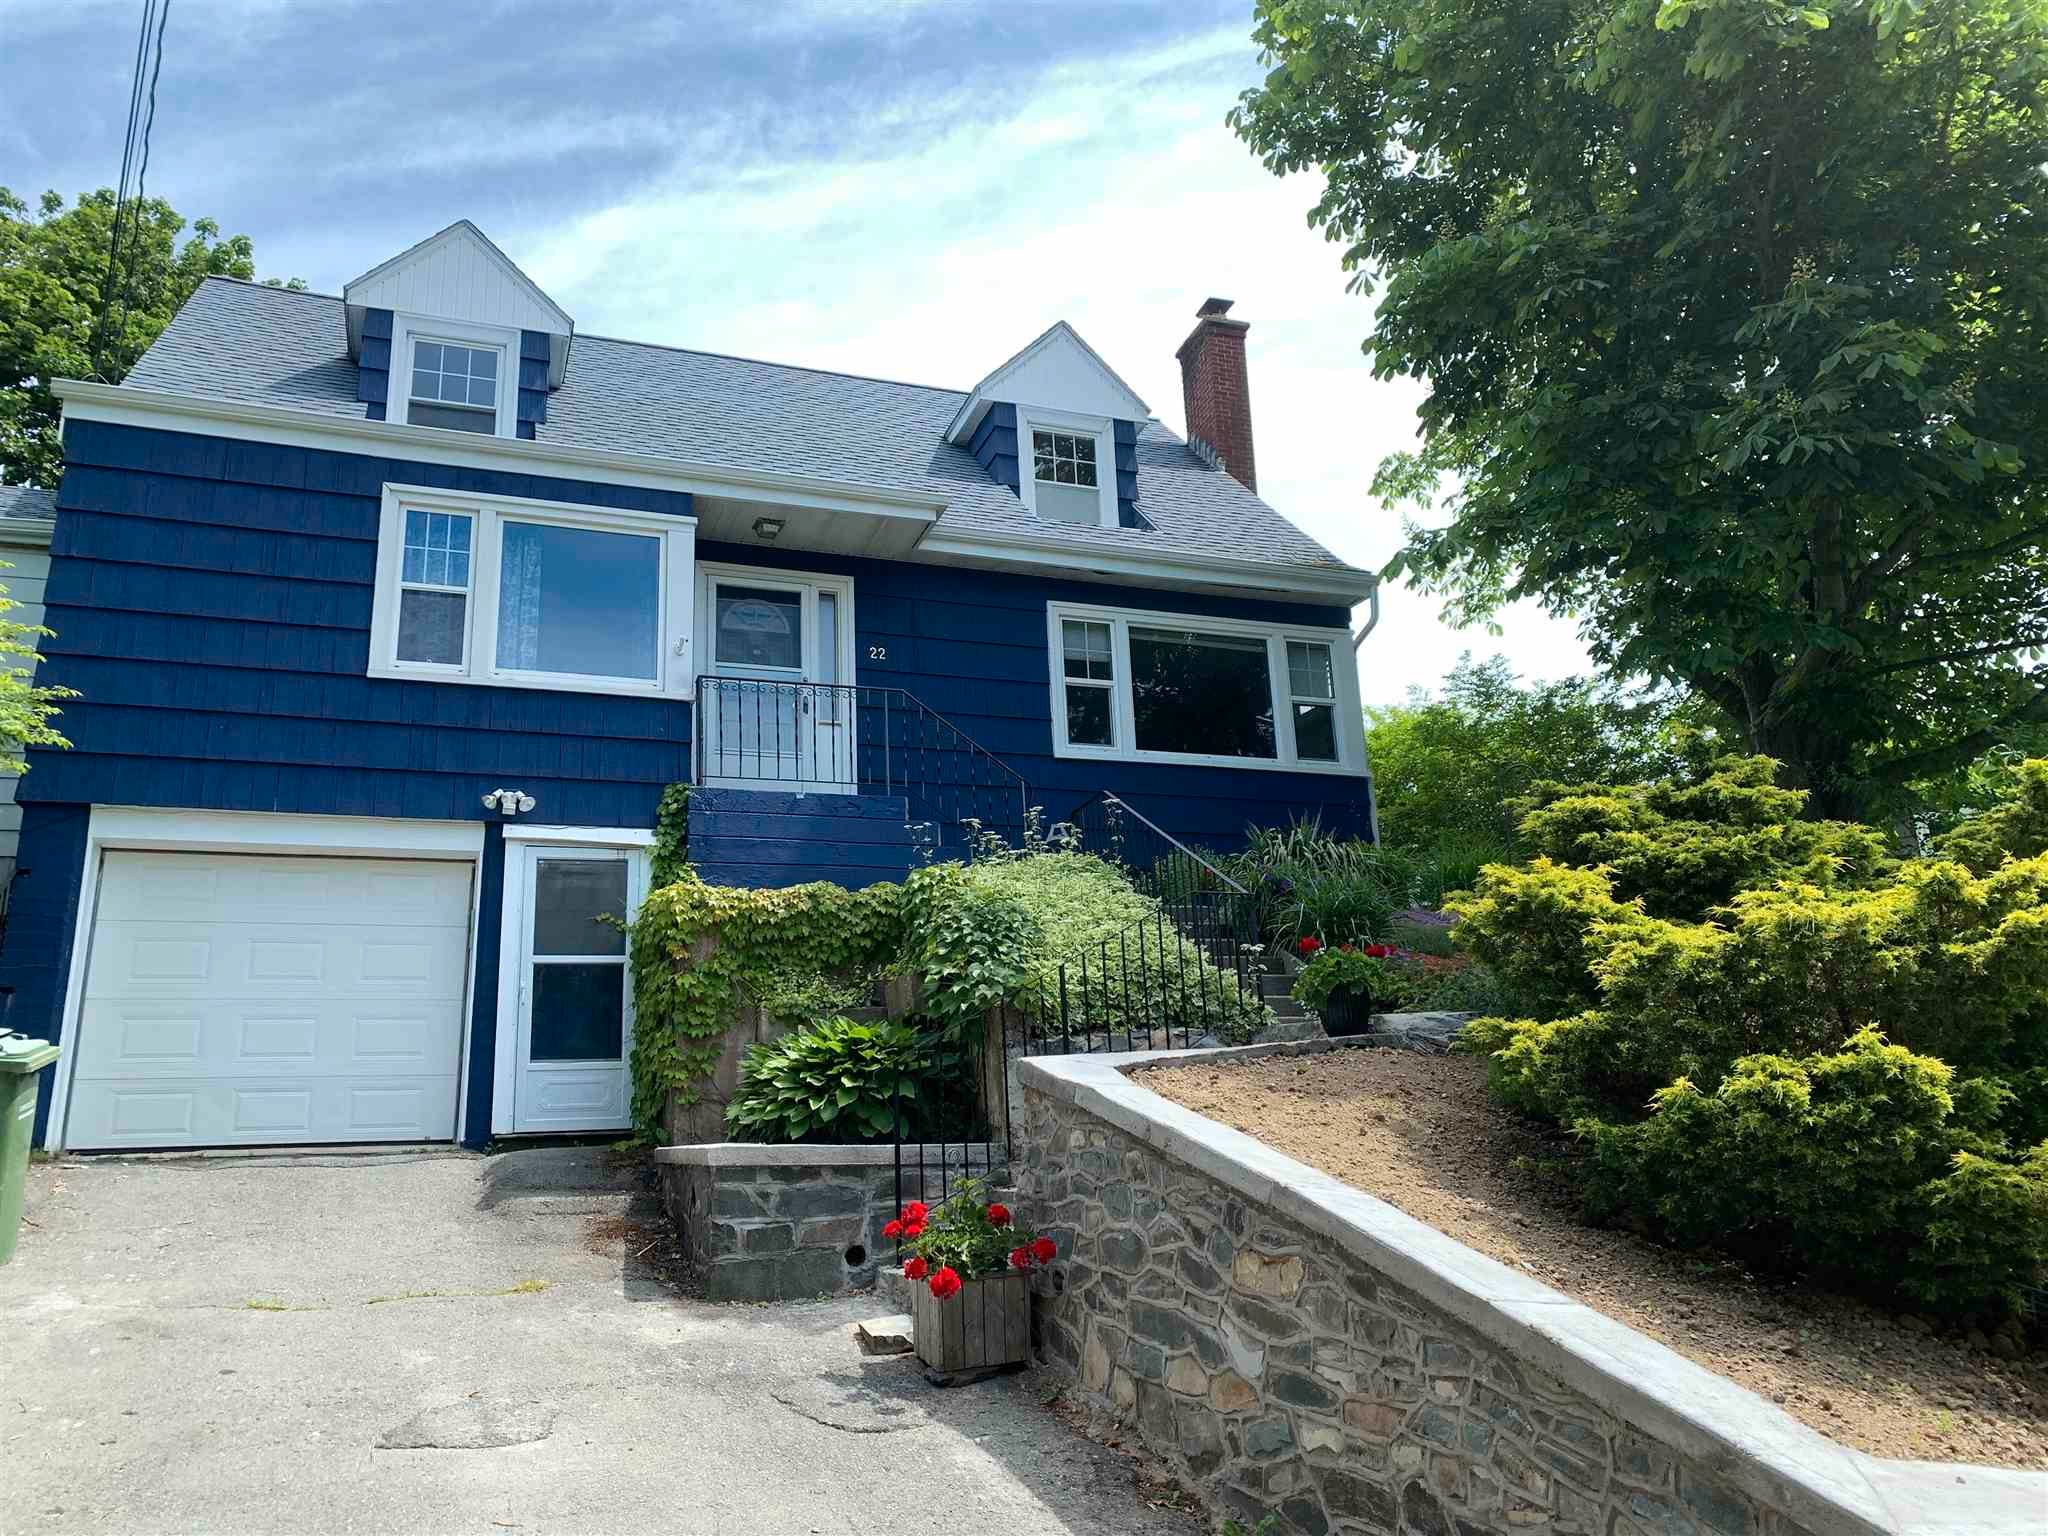 Main Photo: 22 Forest Road in Dartmouth: 13-Crichton Park, Albro Lake Residential for sale (Halifax-Dartmouth)  : MLS®# 202116221